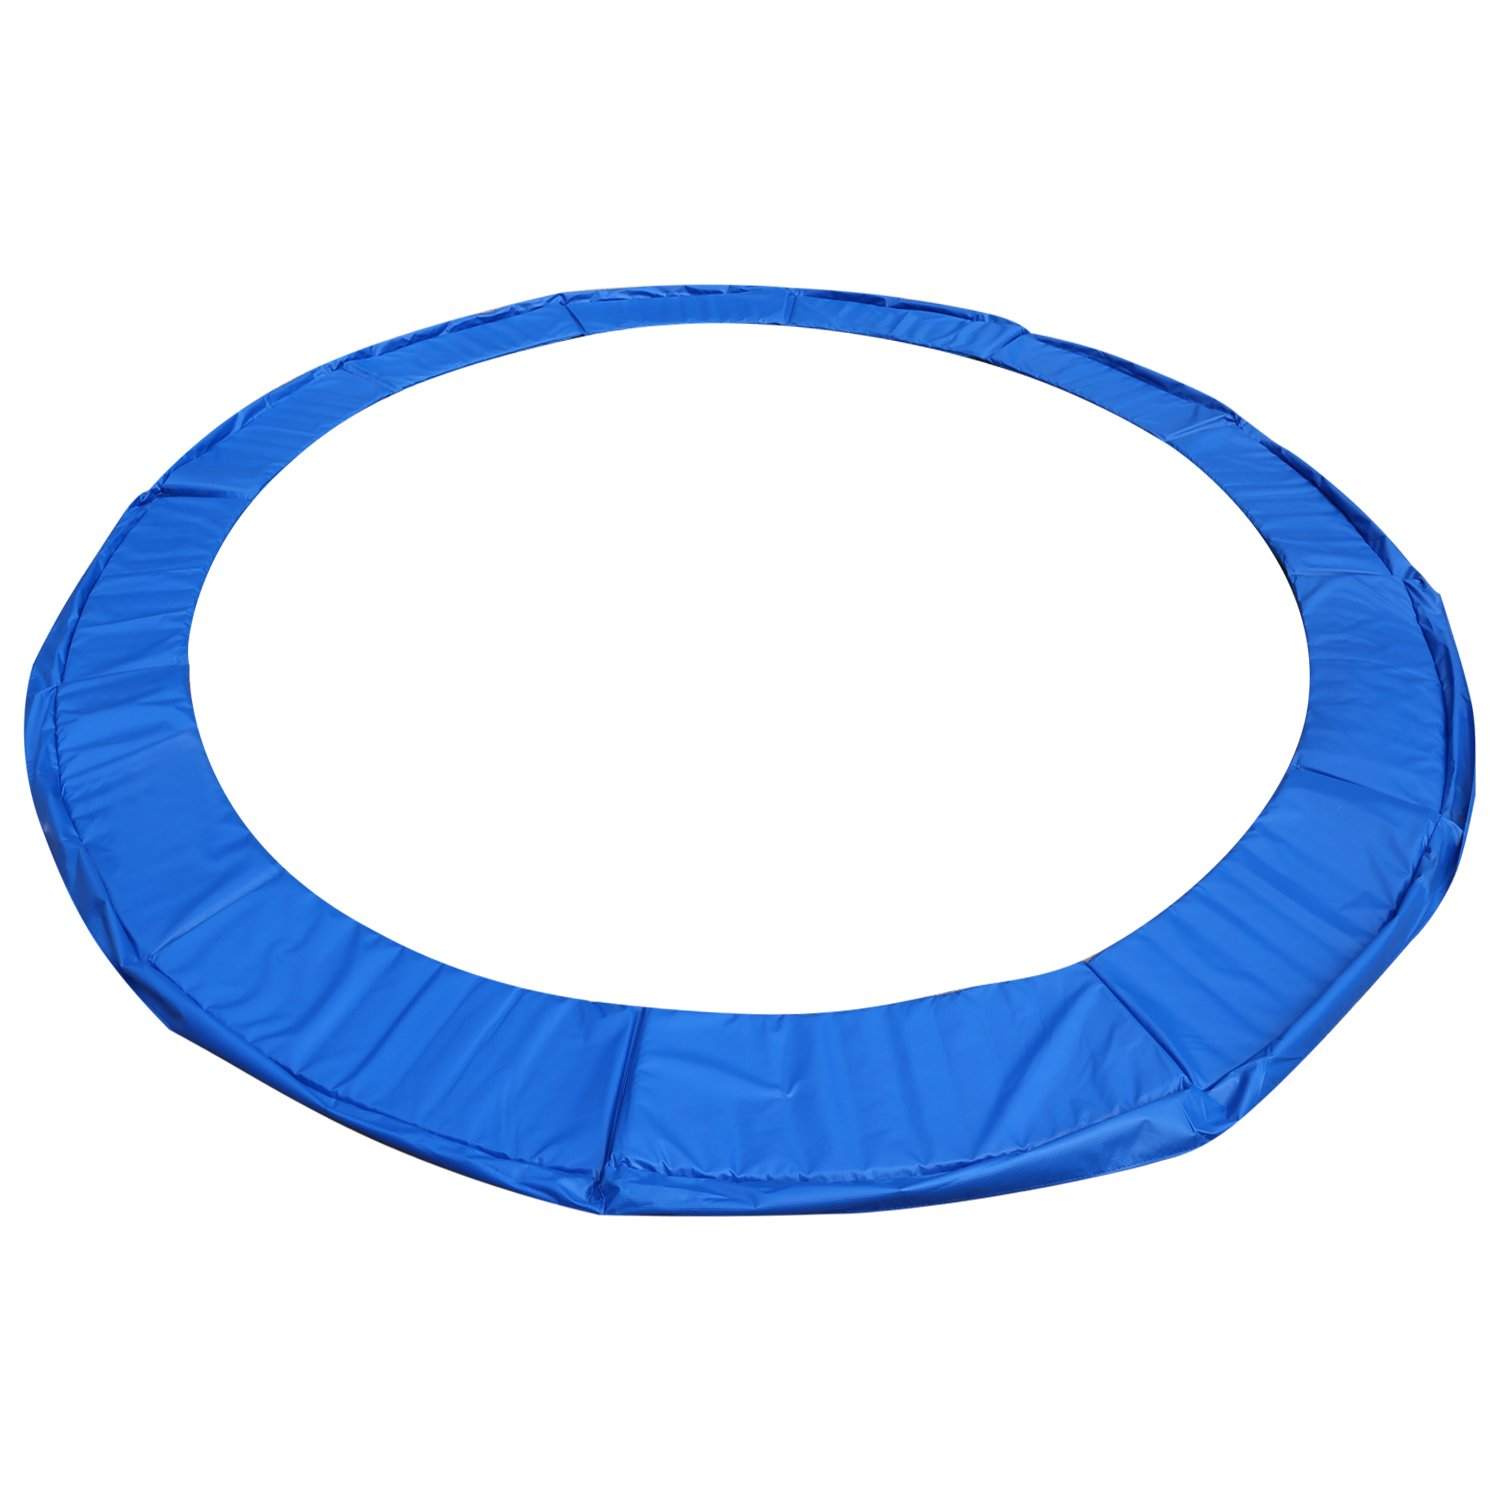 15 14 12 10 Ft Replacement Trampoline Surround PVC Pad Foam Safety Spring Cover Padding Pads (Blue, 15 Ft)